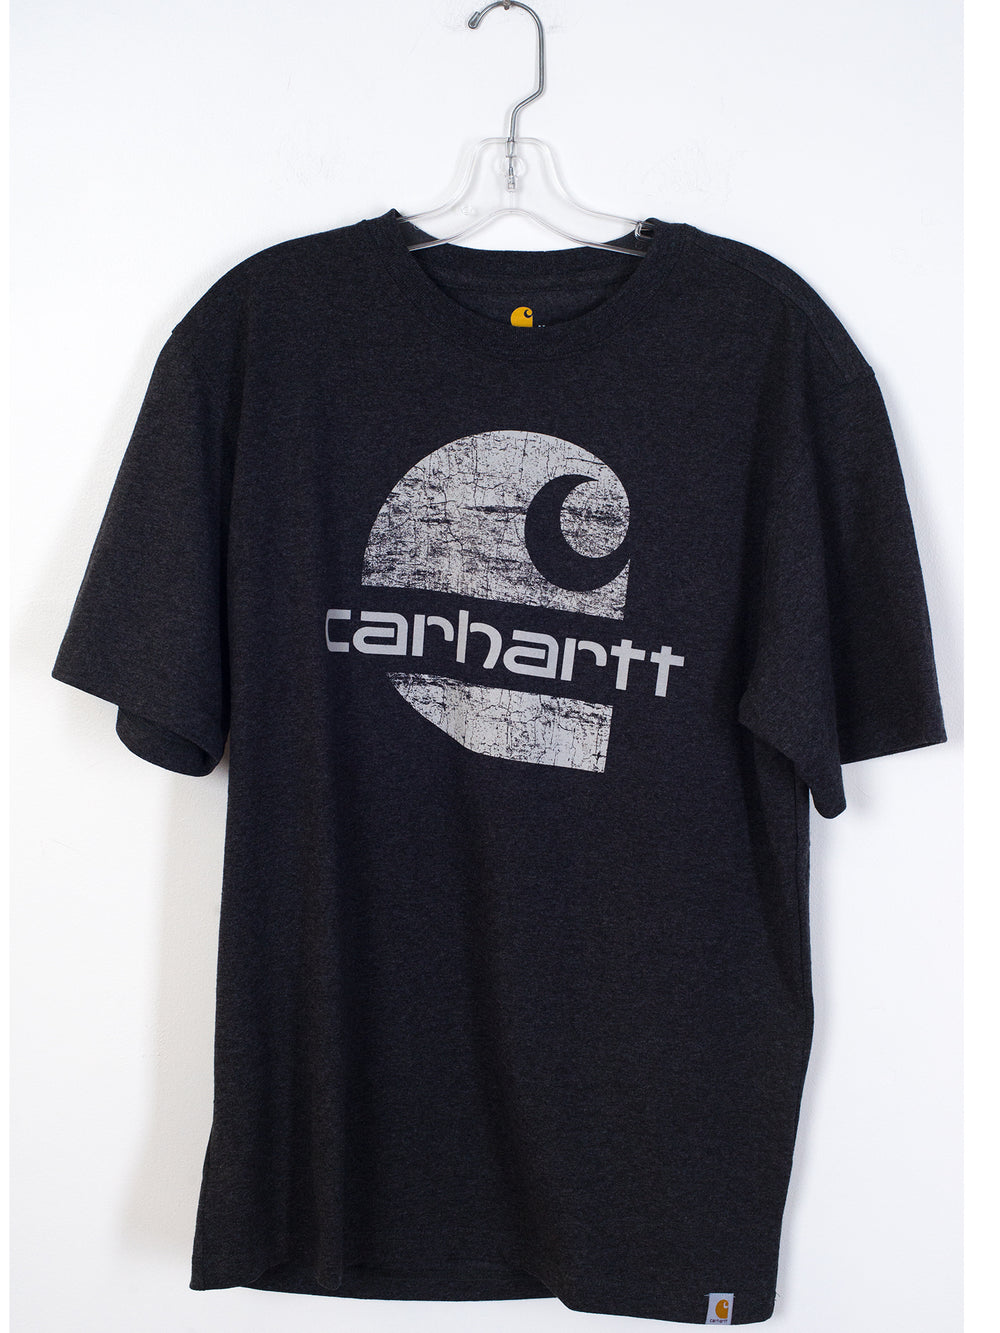 MENS GRAPHIC SHORT SLEEVE T-SHIRT- CARBON HTHR